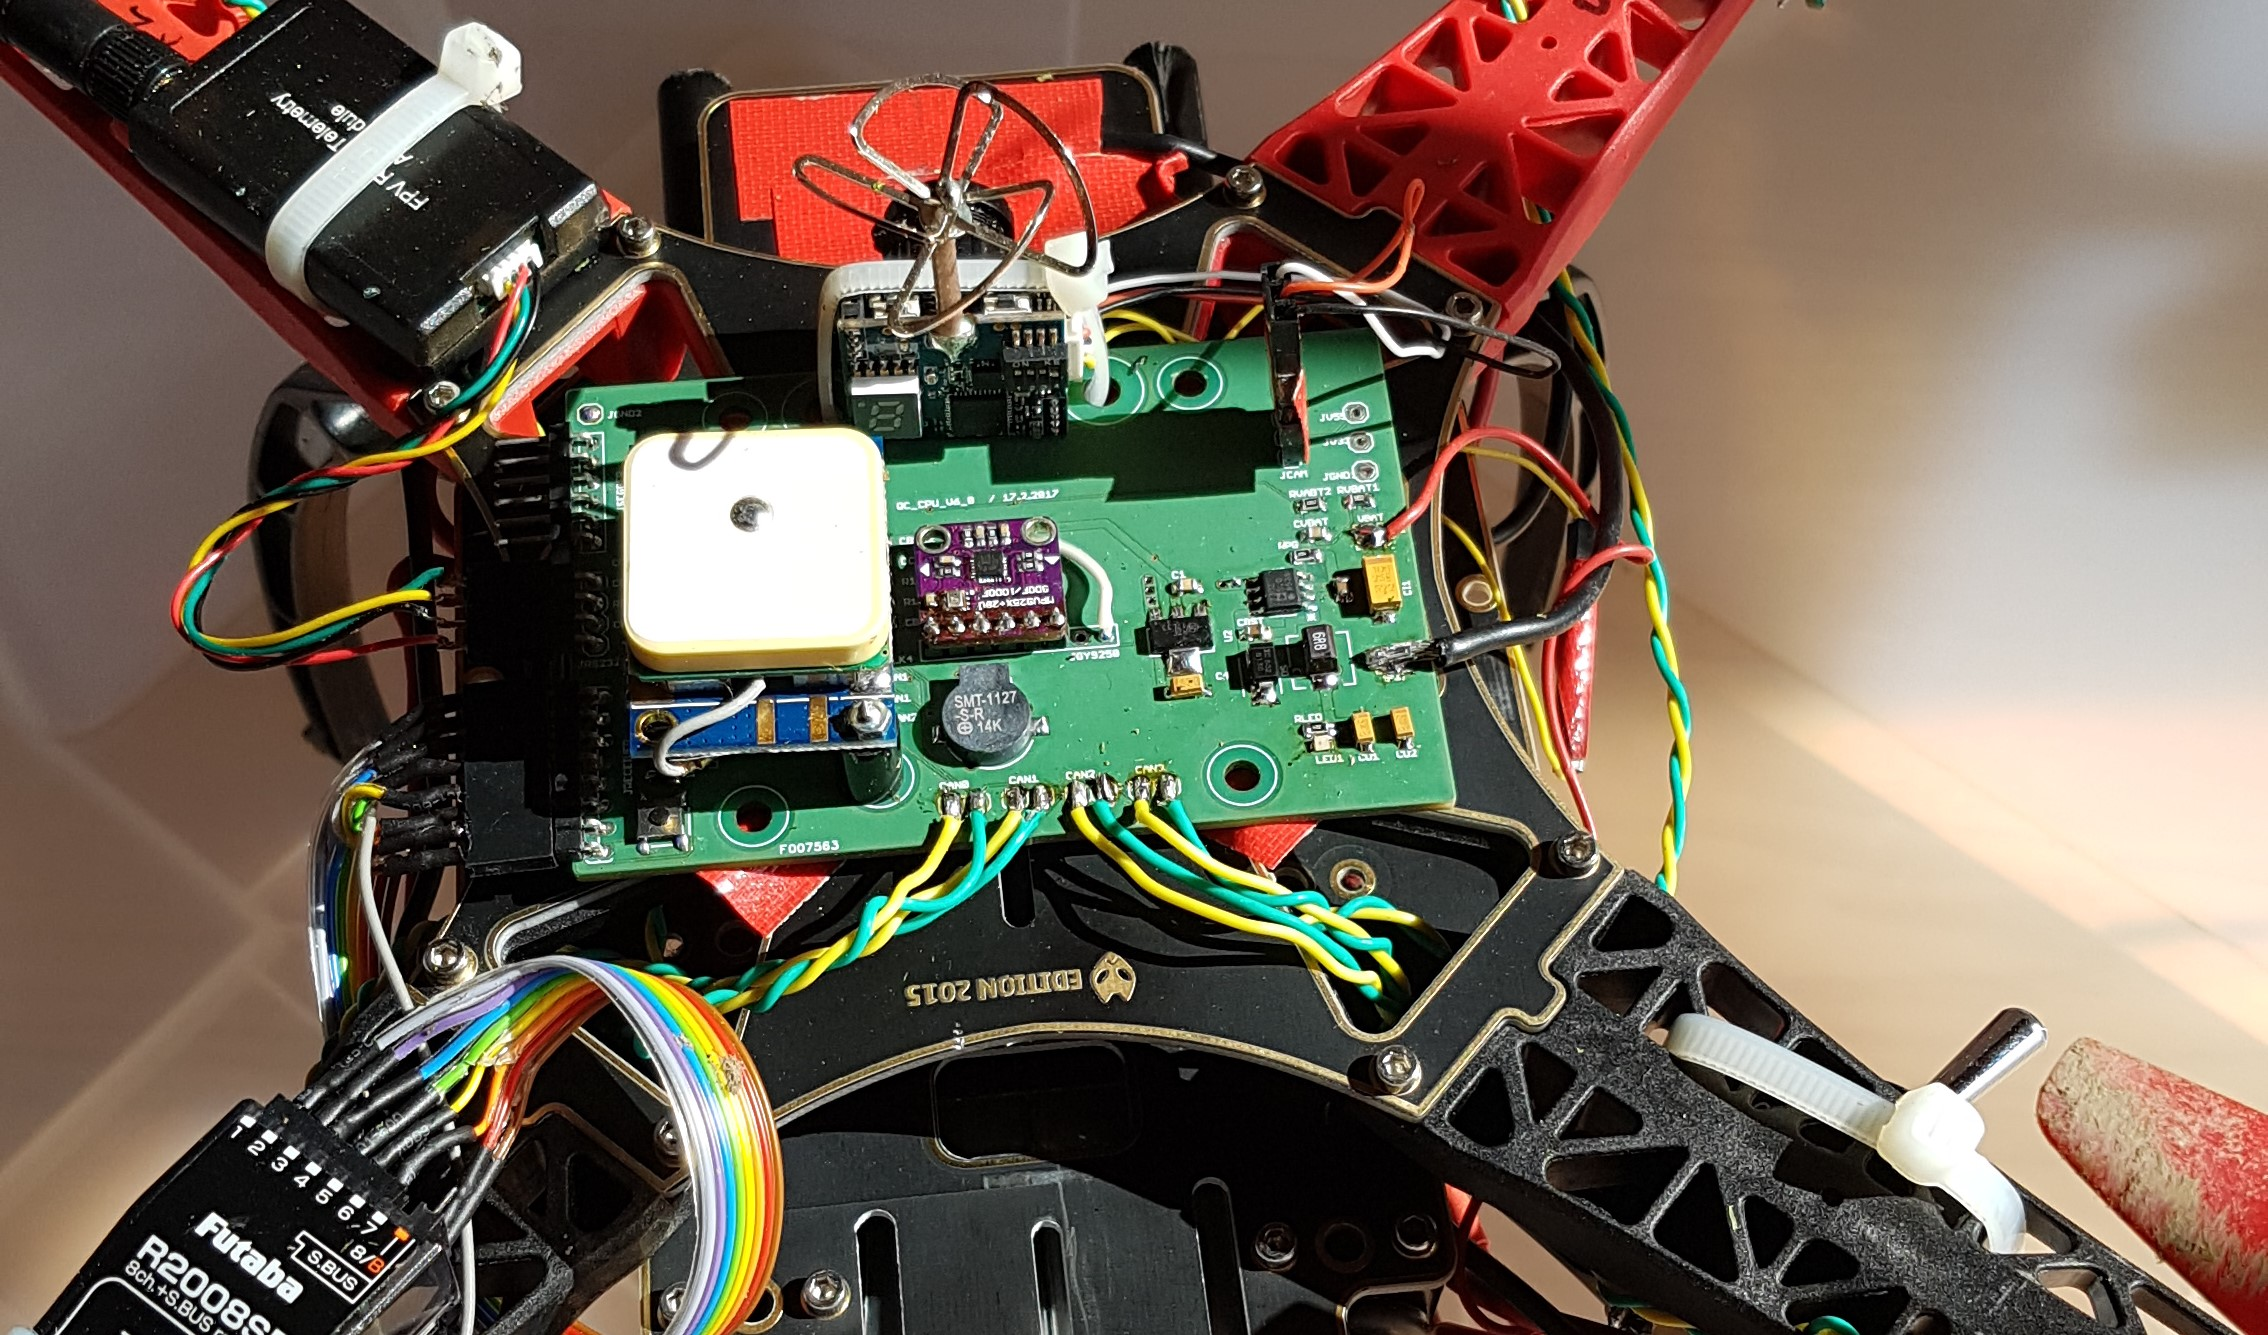 STM32F4 powered flight controller with MPU9250 motion sensor and Madgwick's sensor fusion